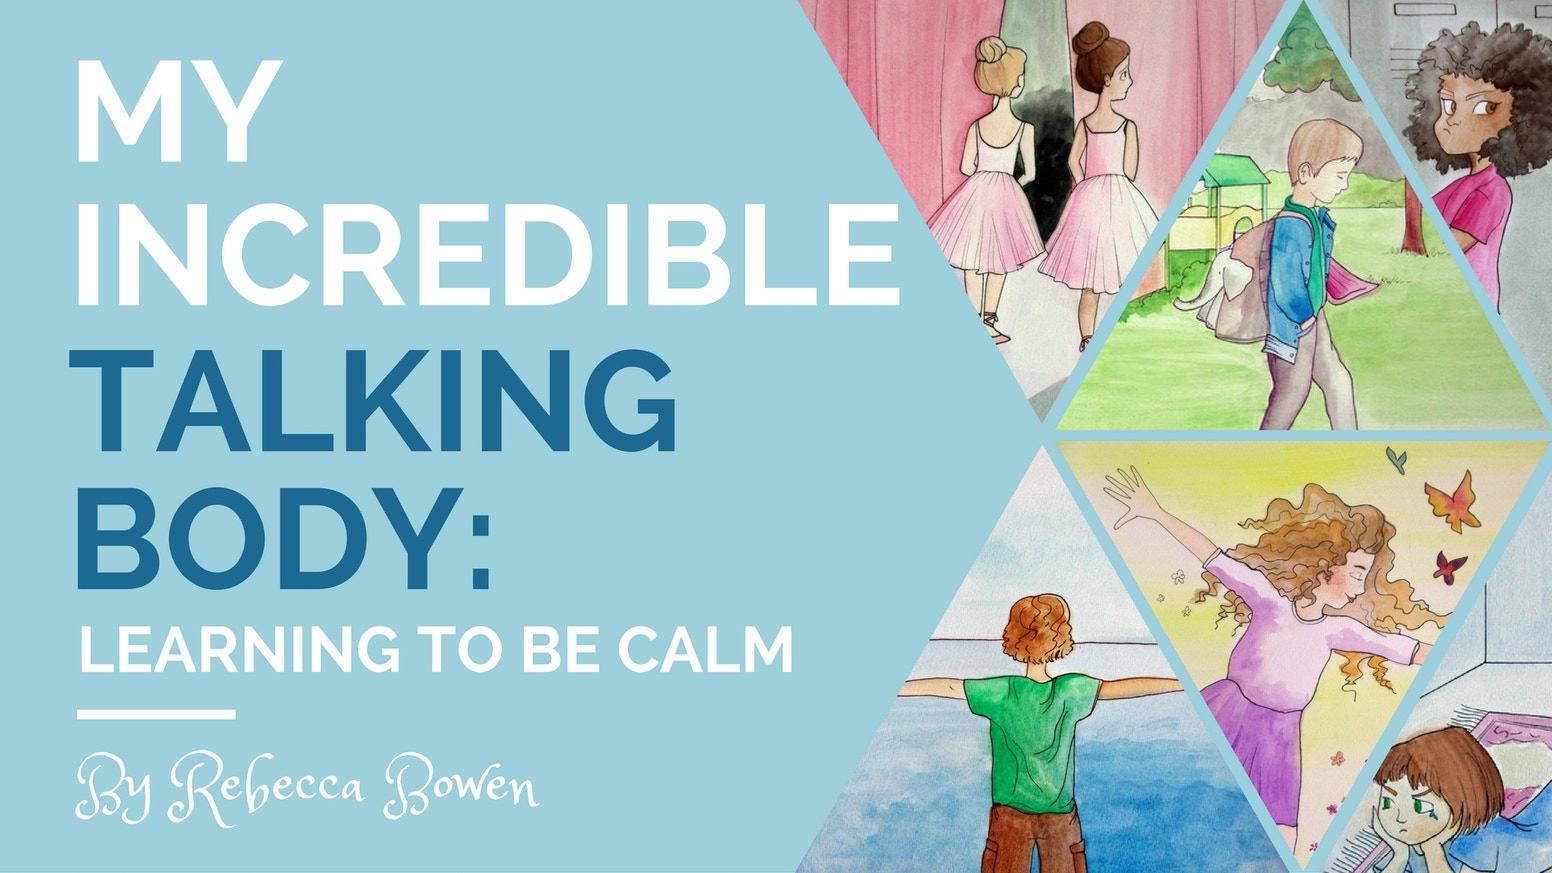 My Incredible Talking Body: Learning to Be Calm by The